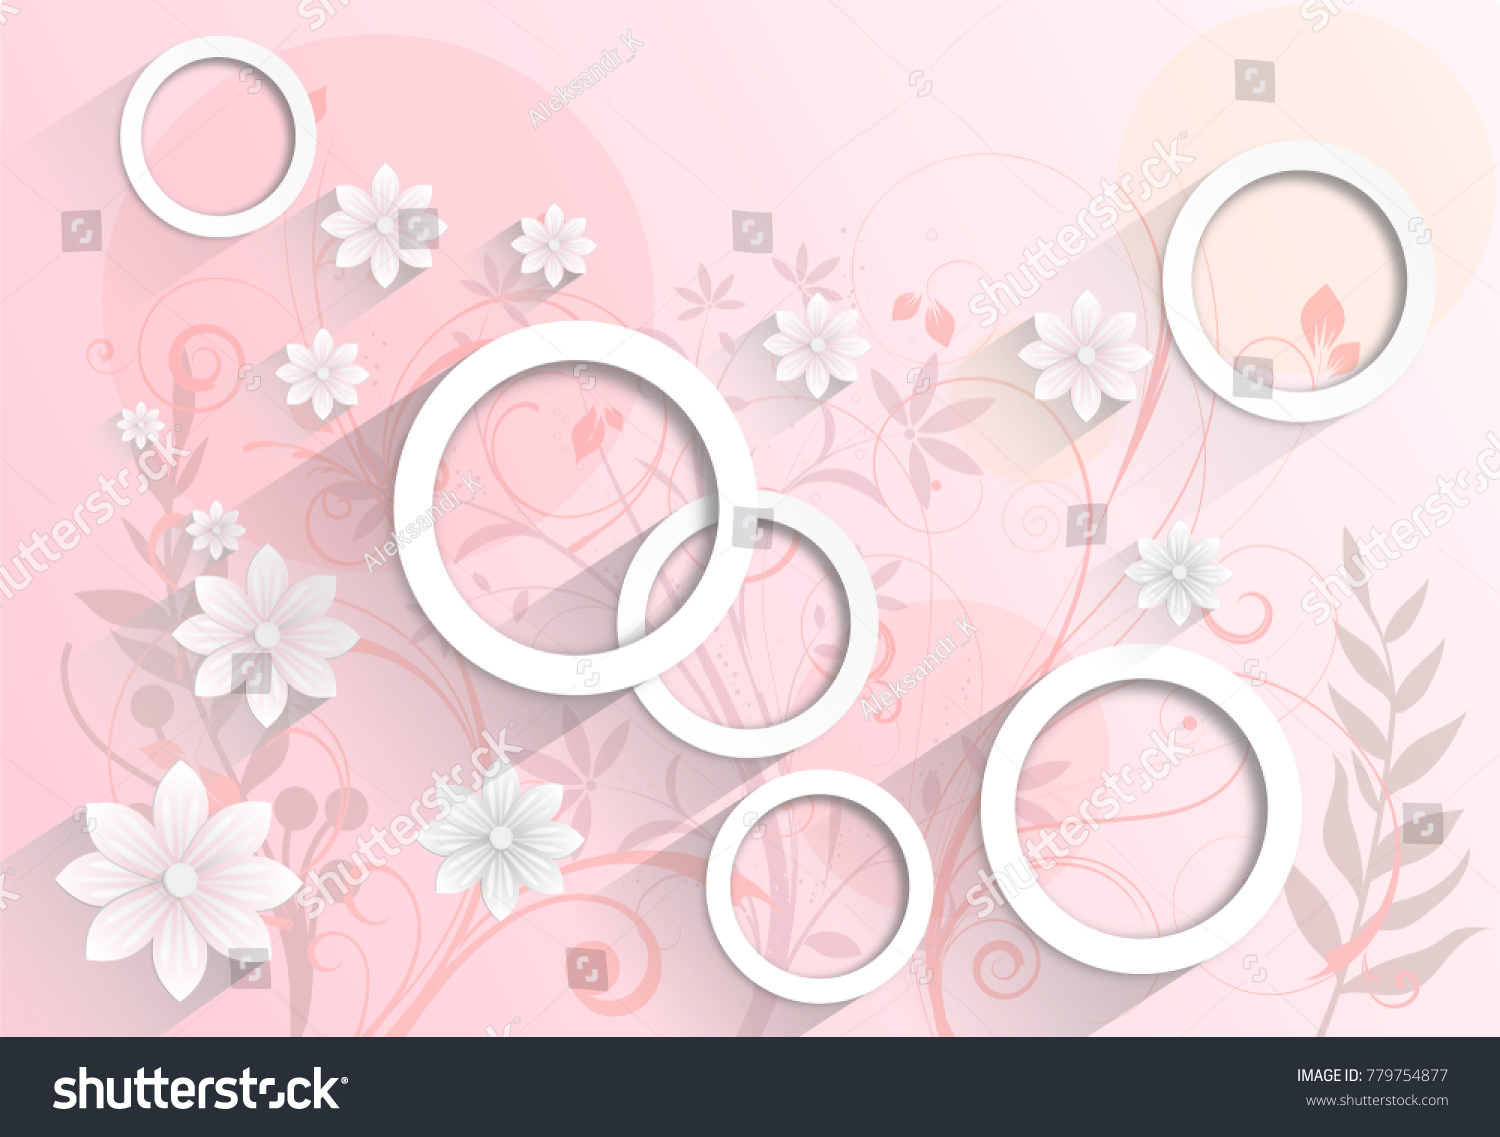 abstract pink wallpaper flowers photo wallpaper stock illustration